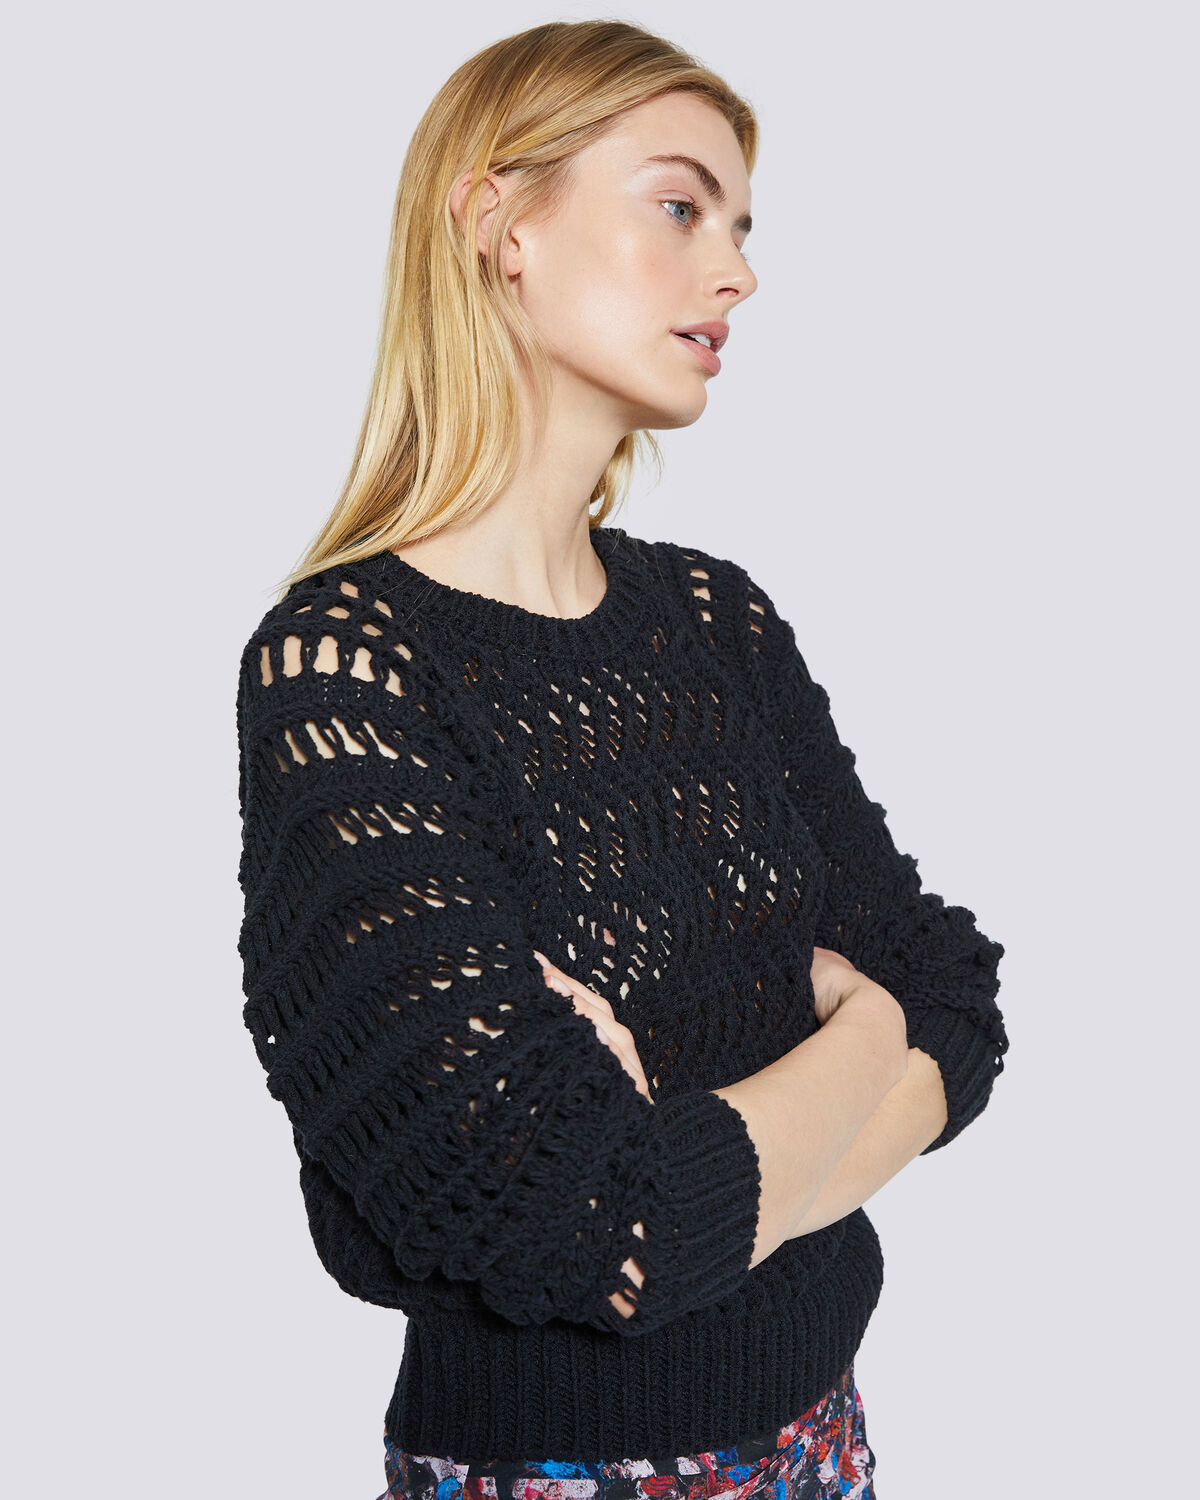 IRO - ATTICA CREW NECK OPEN KNIT SWEATER BLACK